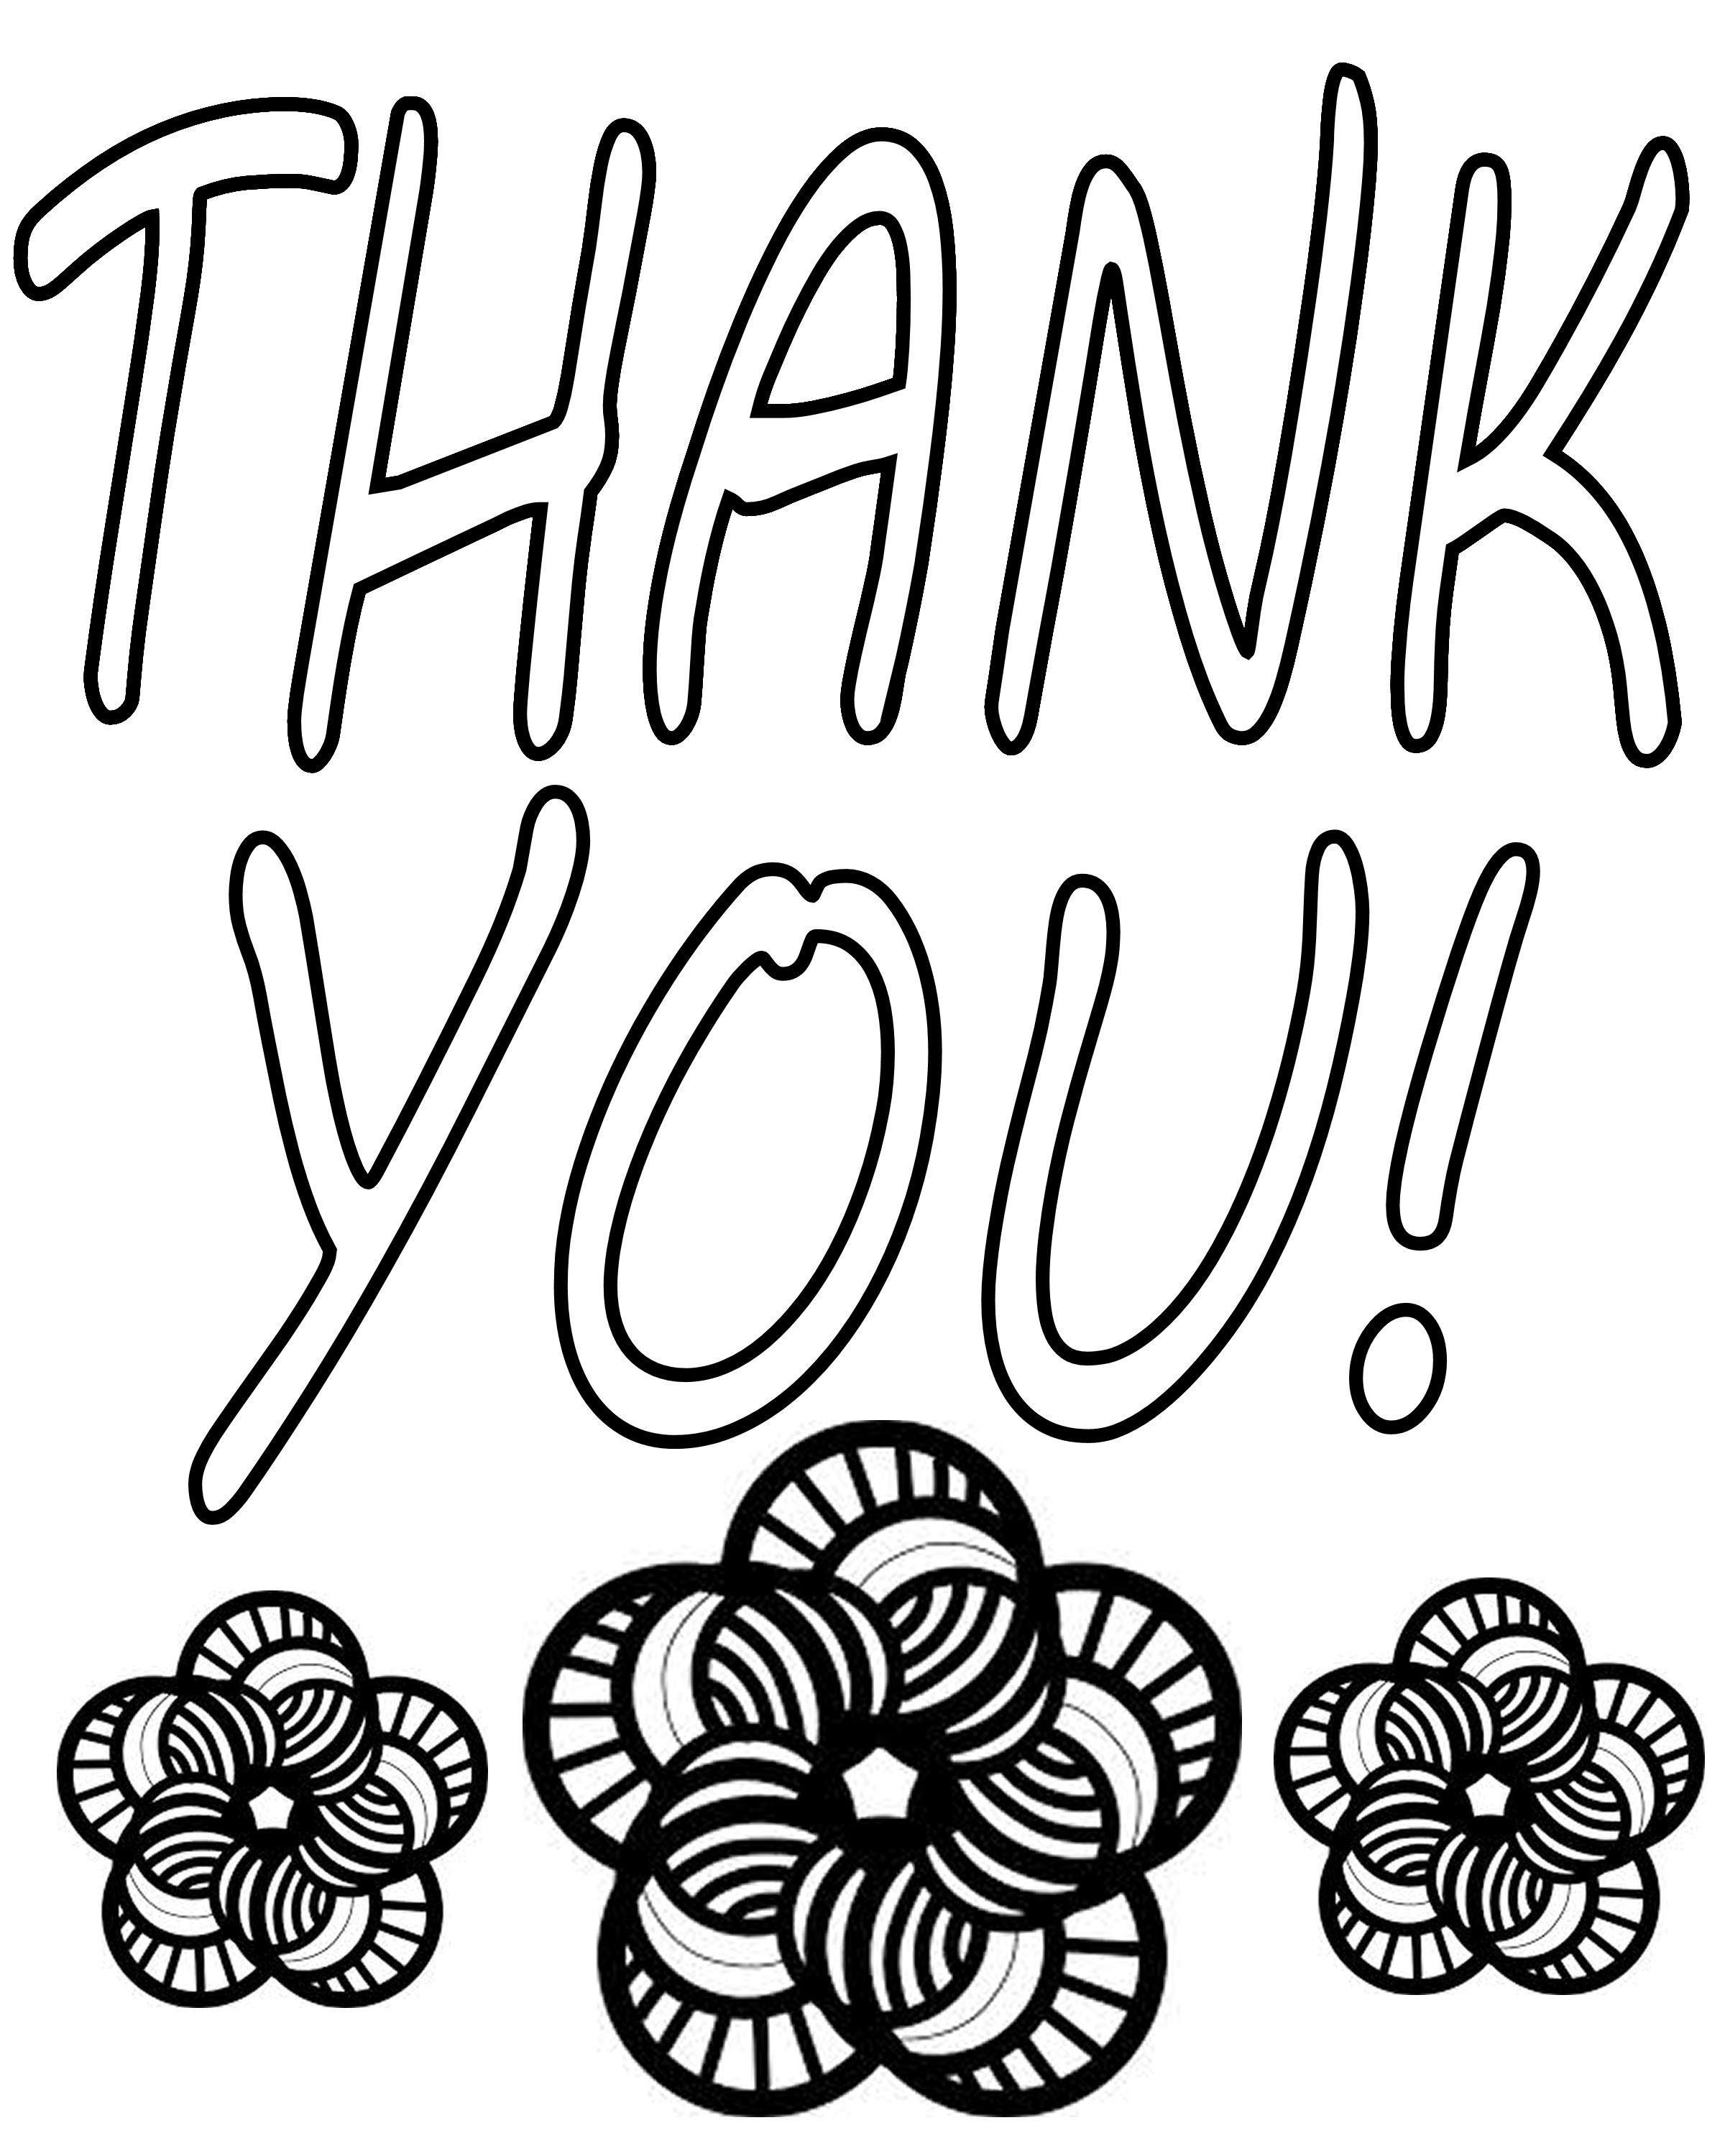 thank you coloring sheets greeting card coloring pages doodle art alley thank sheets you coloring